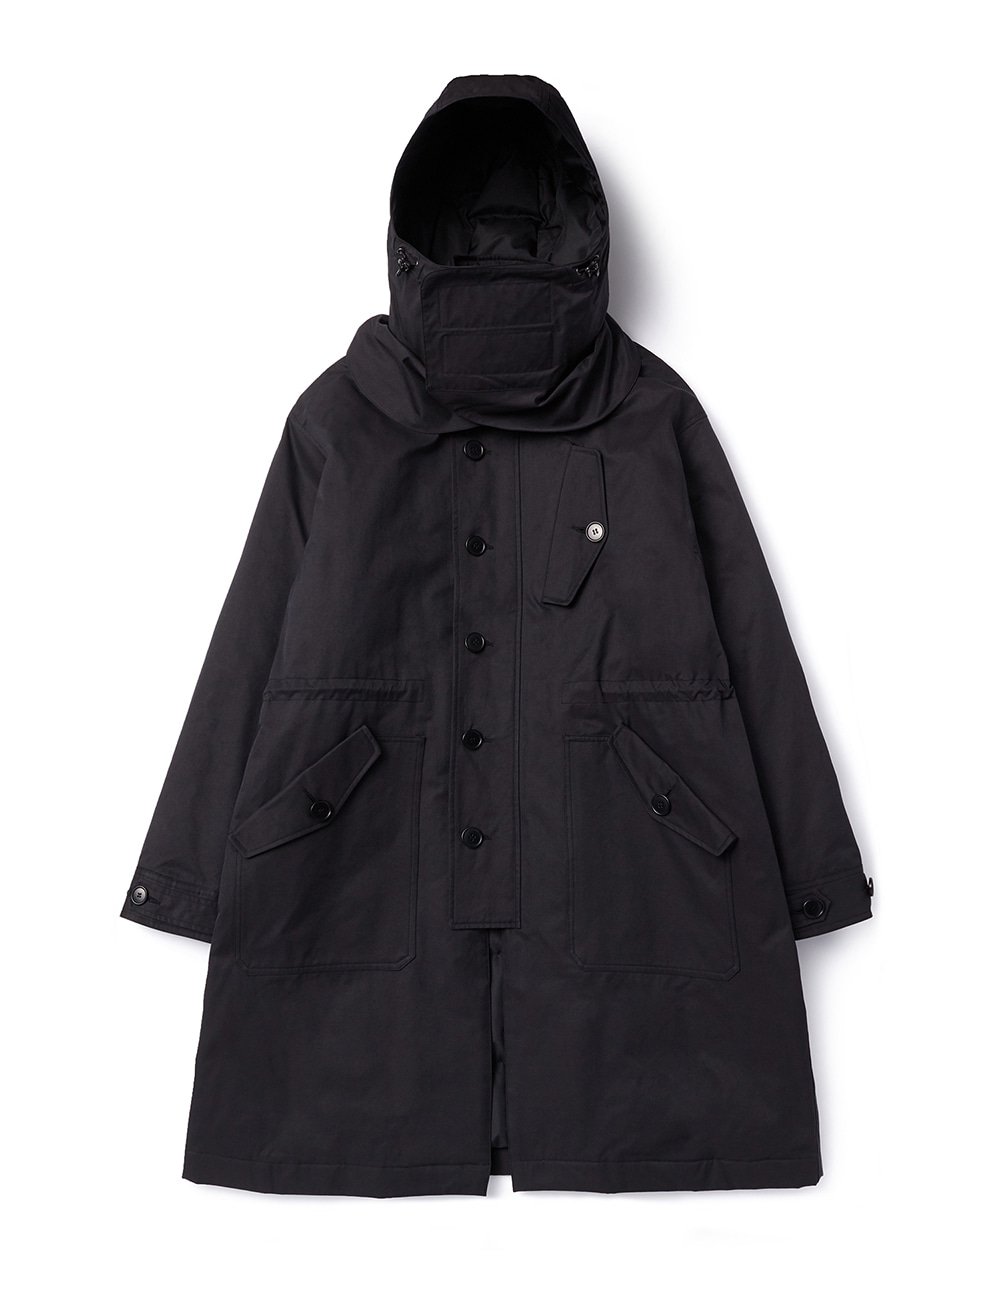 [DGRE] R.A.F COLD WEATHER DOWN PARKA (BLACK)